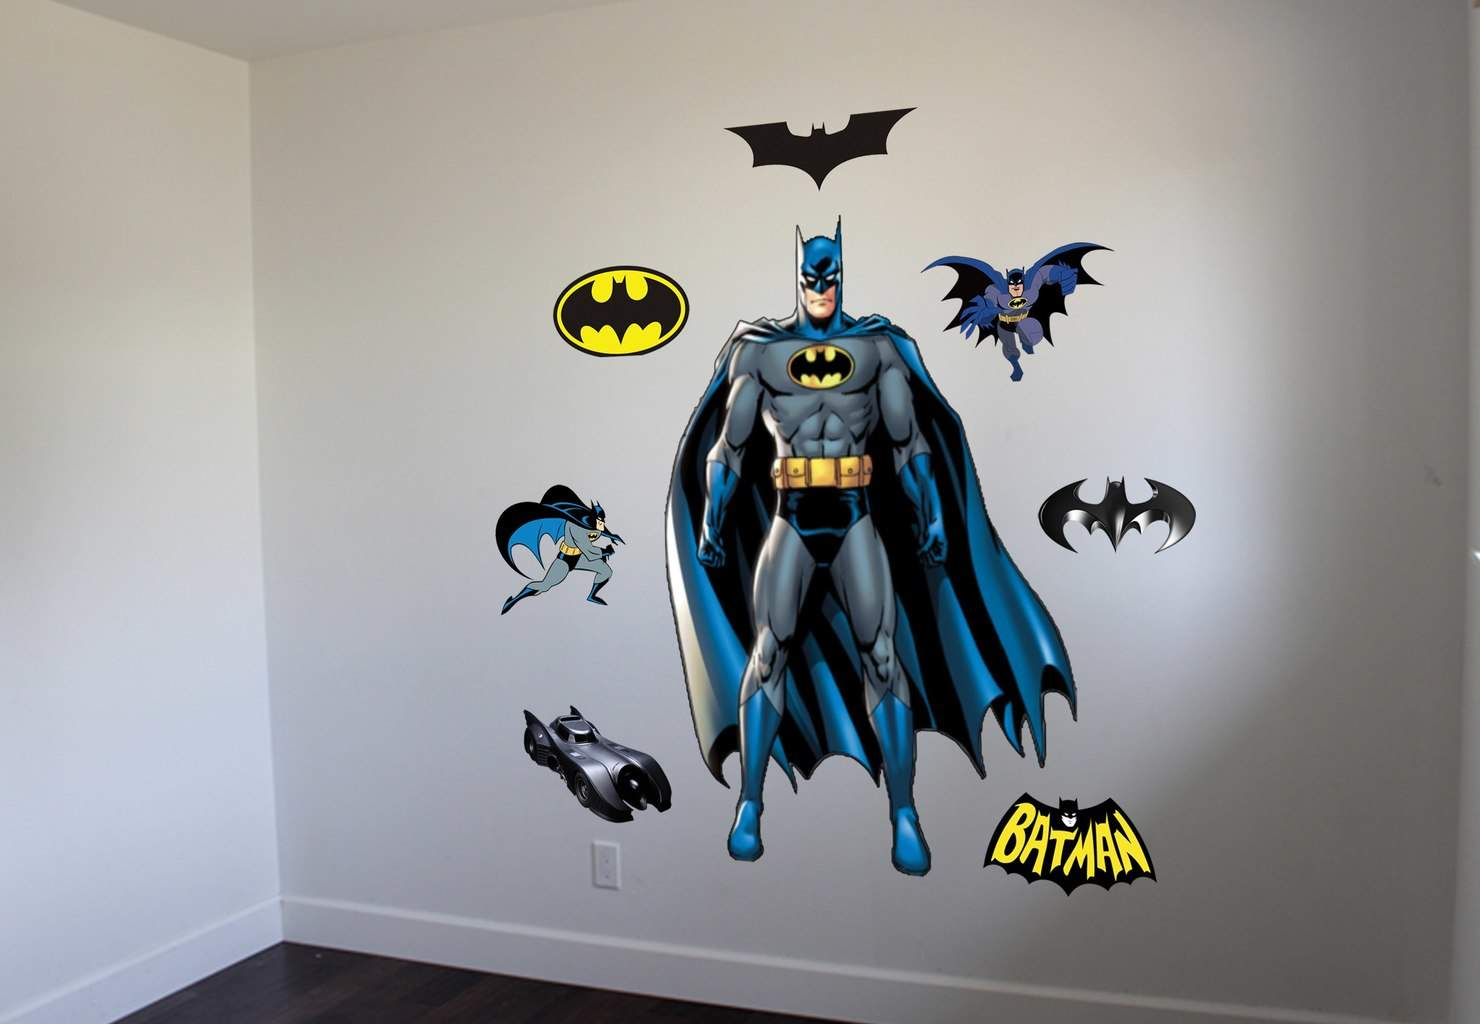 Charming Batman Wall Decal Graphic Batman Wall Decal Sticker